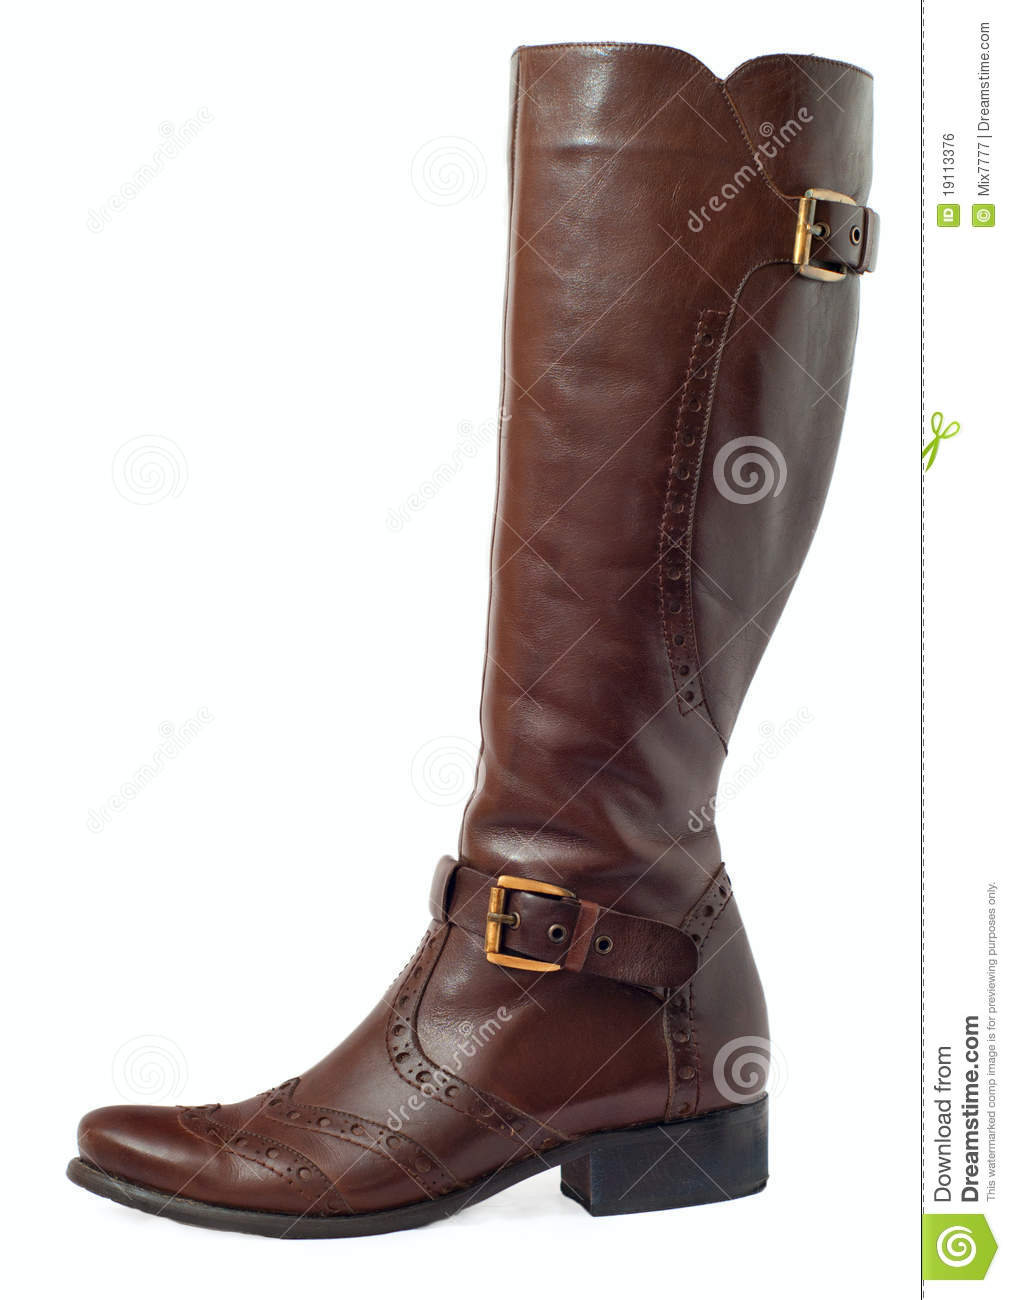 Women Brown Leather Boots Royalty Free Stock Image - Image: 19113376